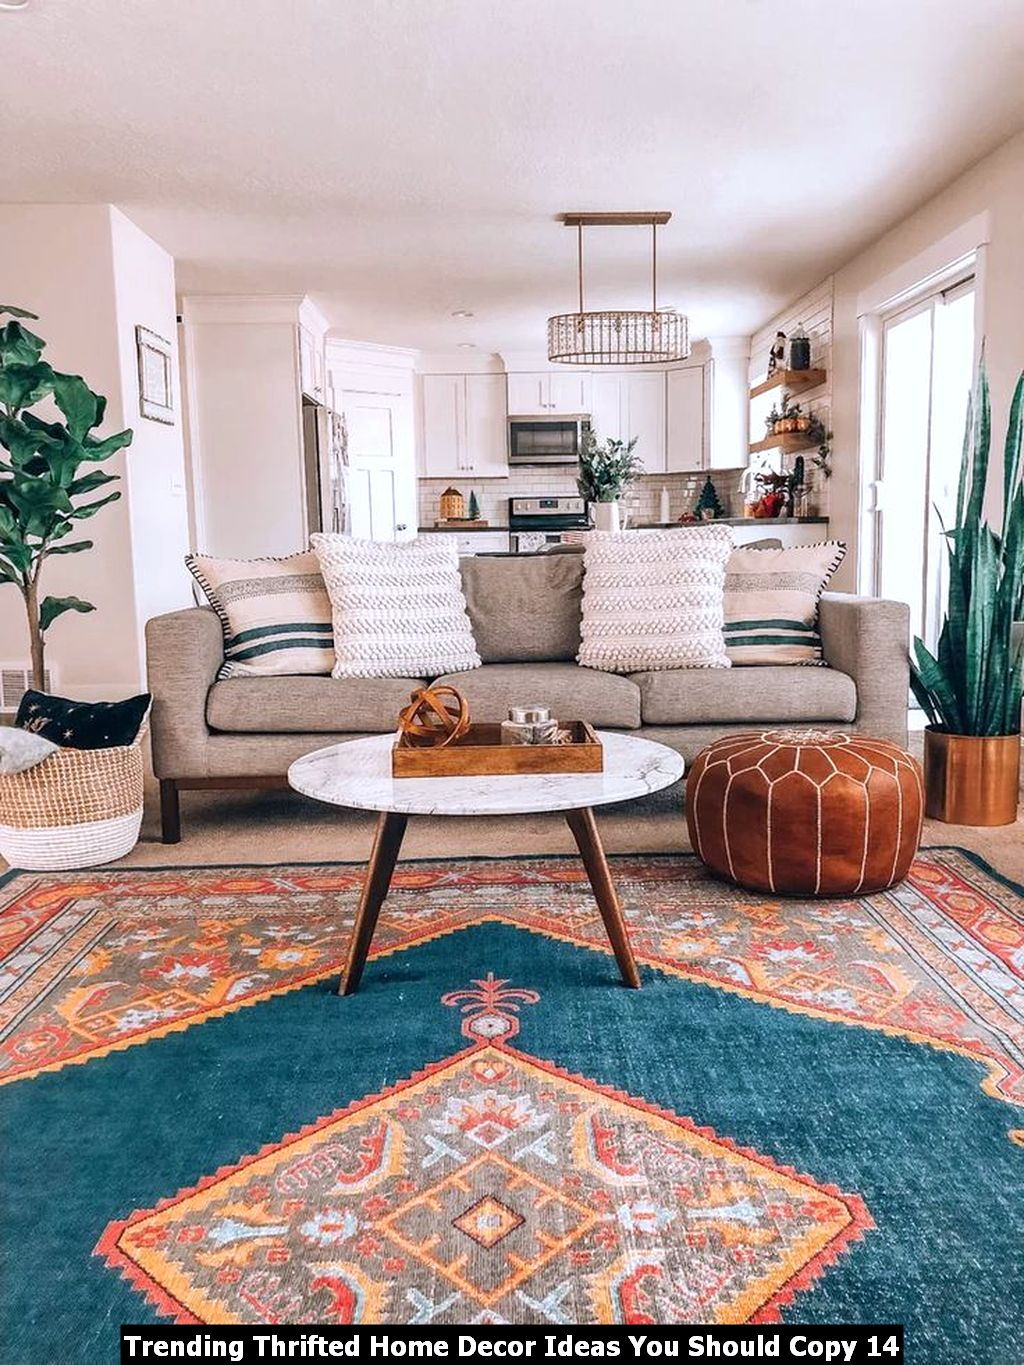 Trending Thrifted Home Decor Ideas You Should Copy 14